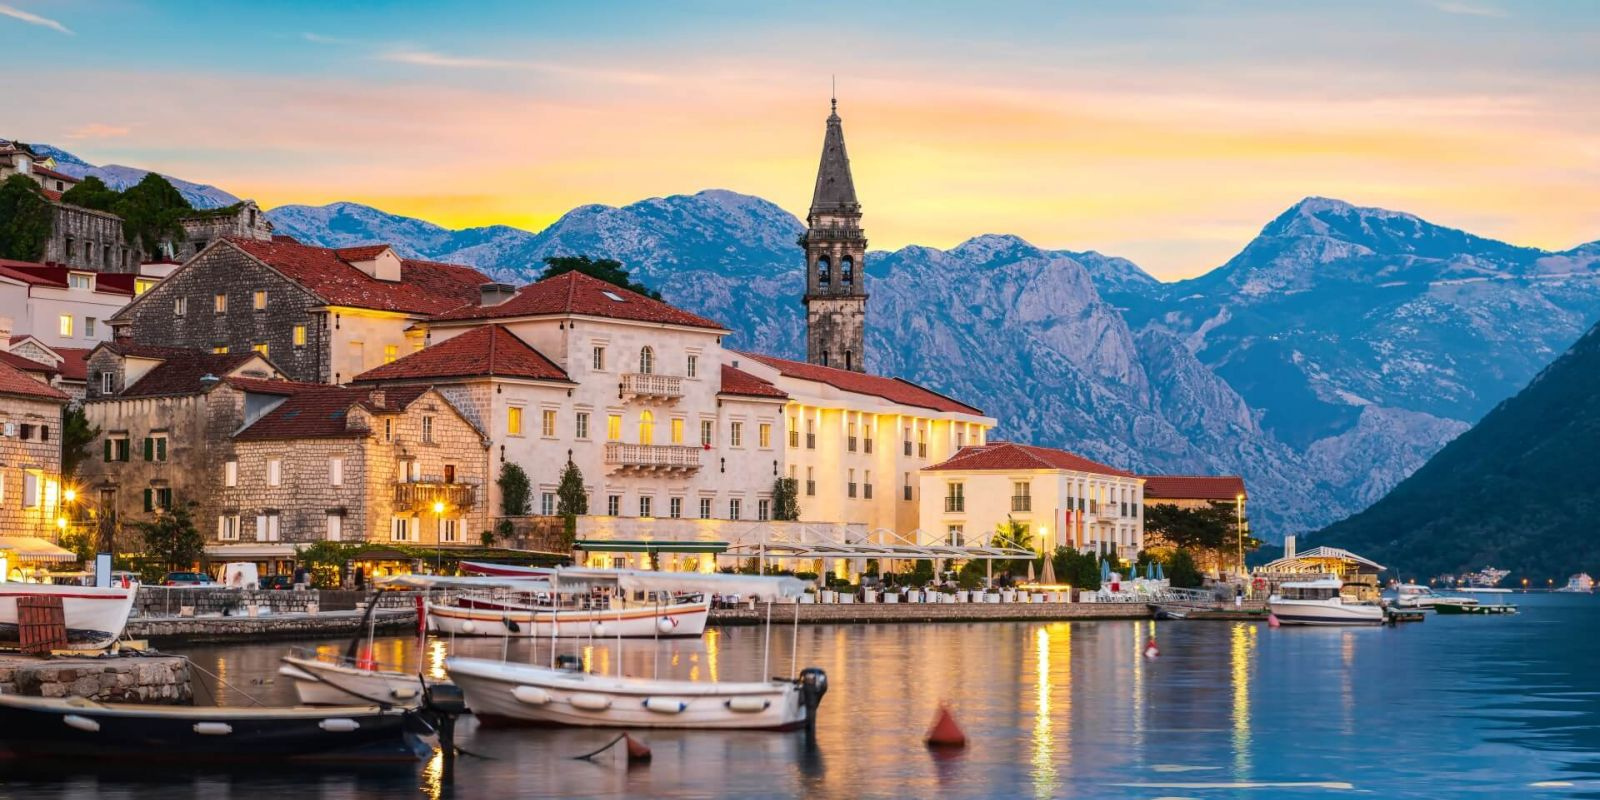 https://www.talamare.com/medias/Sunset over the historic town of Perast in the Bay of Kotor during a Montenegro yacht charter